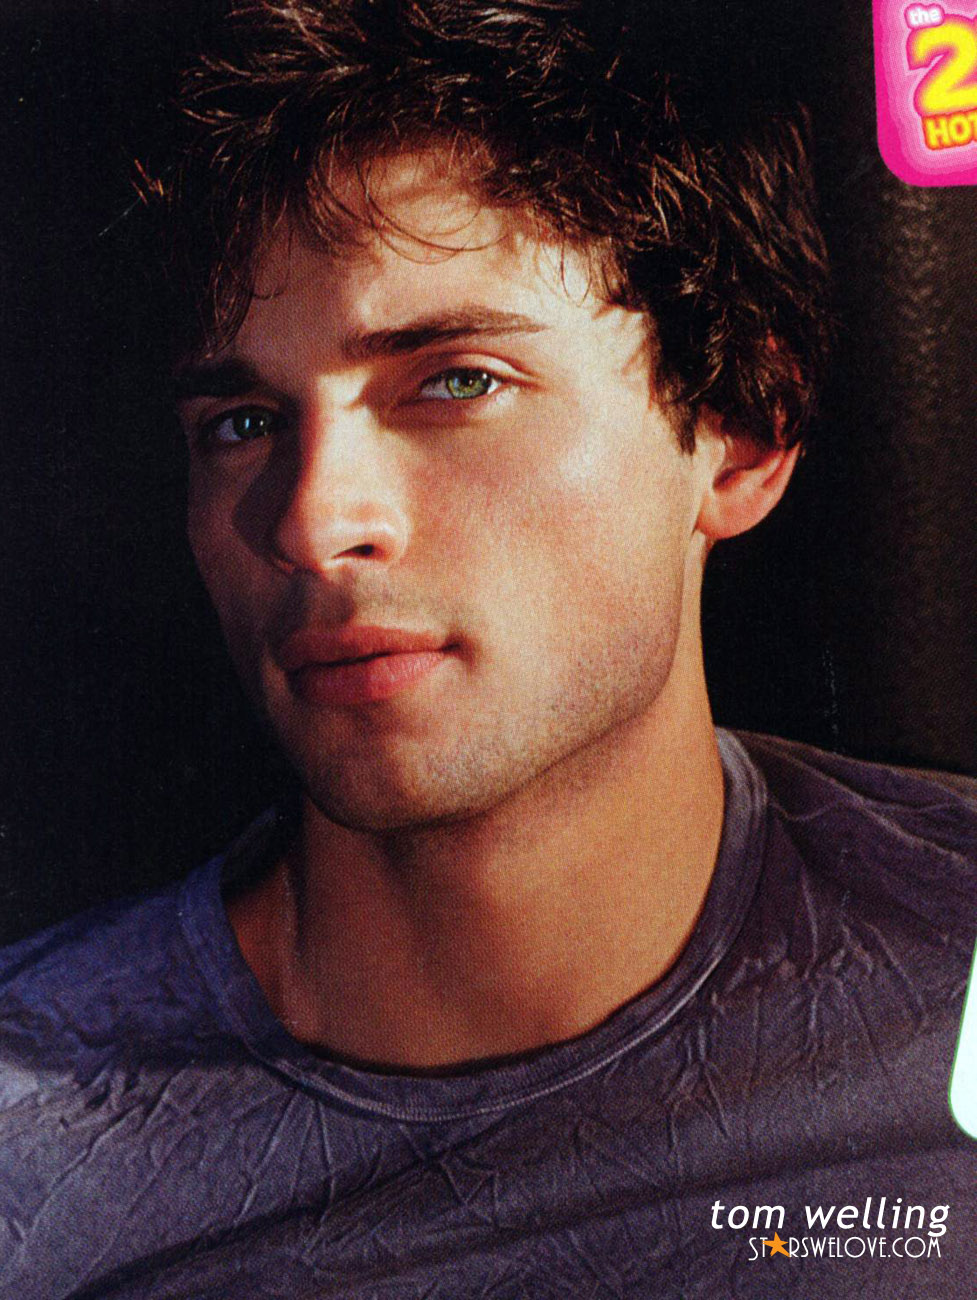 Tom Welling photo (tom_welling034, 977 x 1300 pixels, 315 kB)